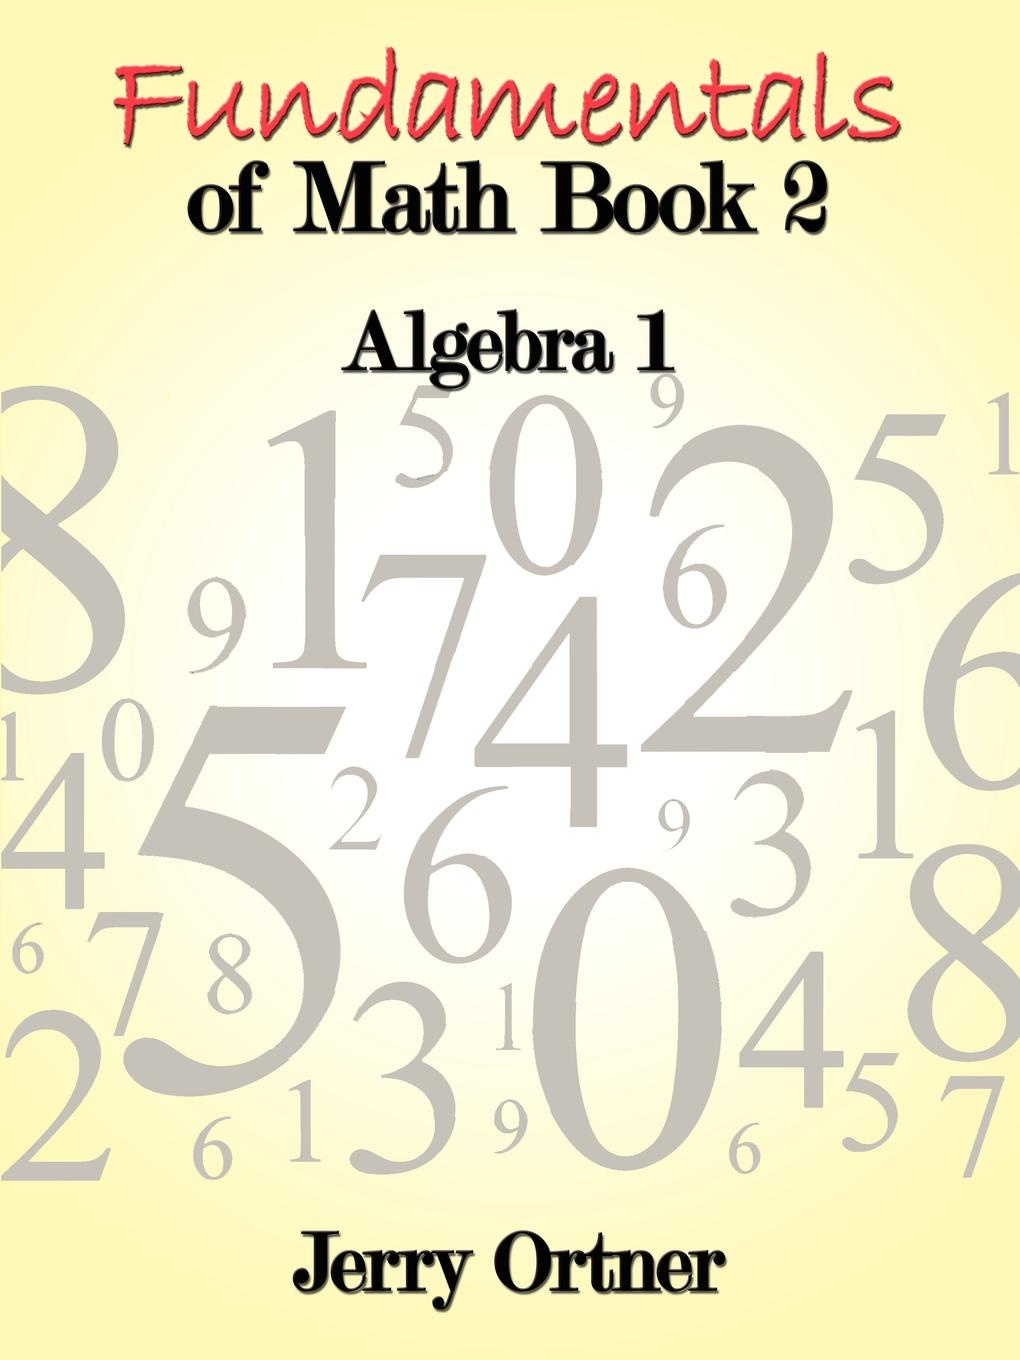 Jerry Ortner Fundamentals of Math Book 2. Algebra